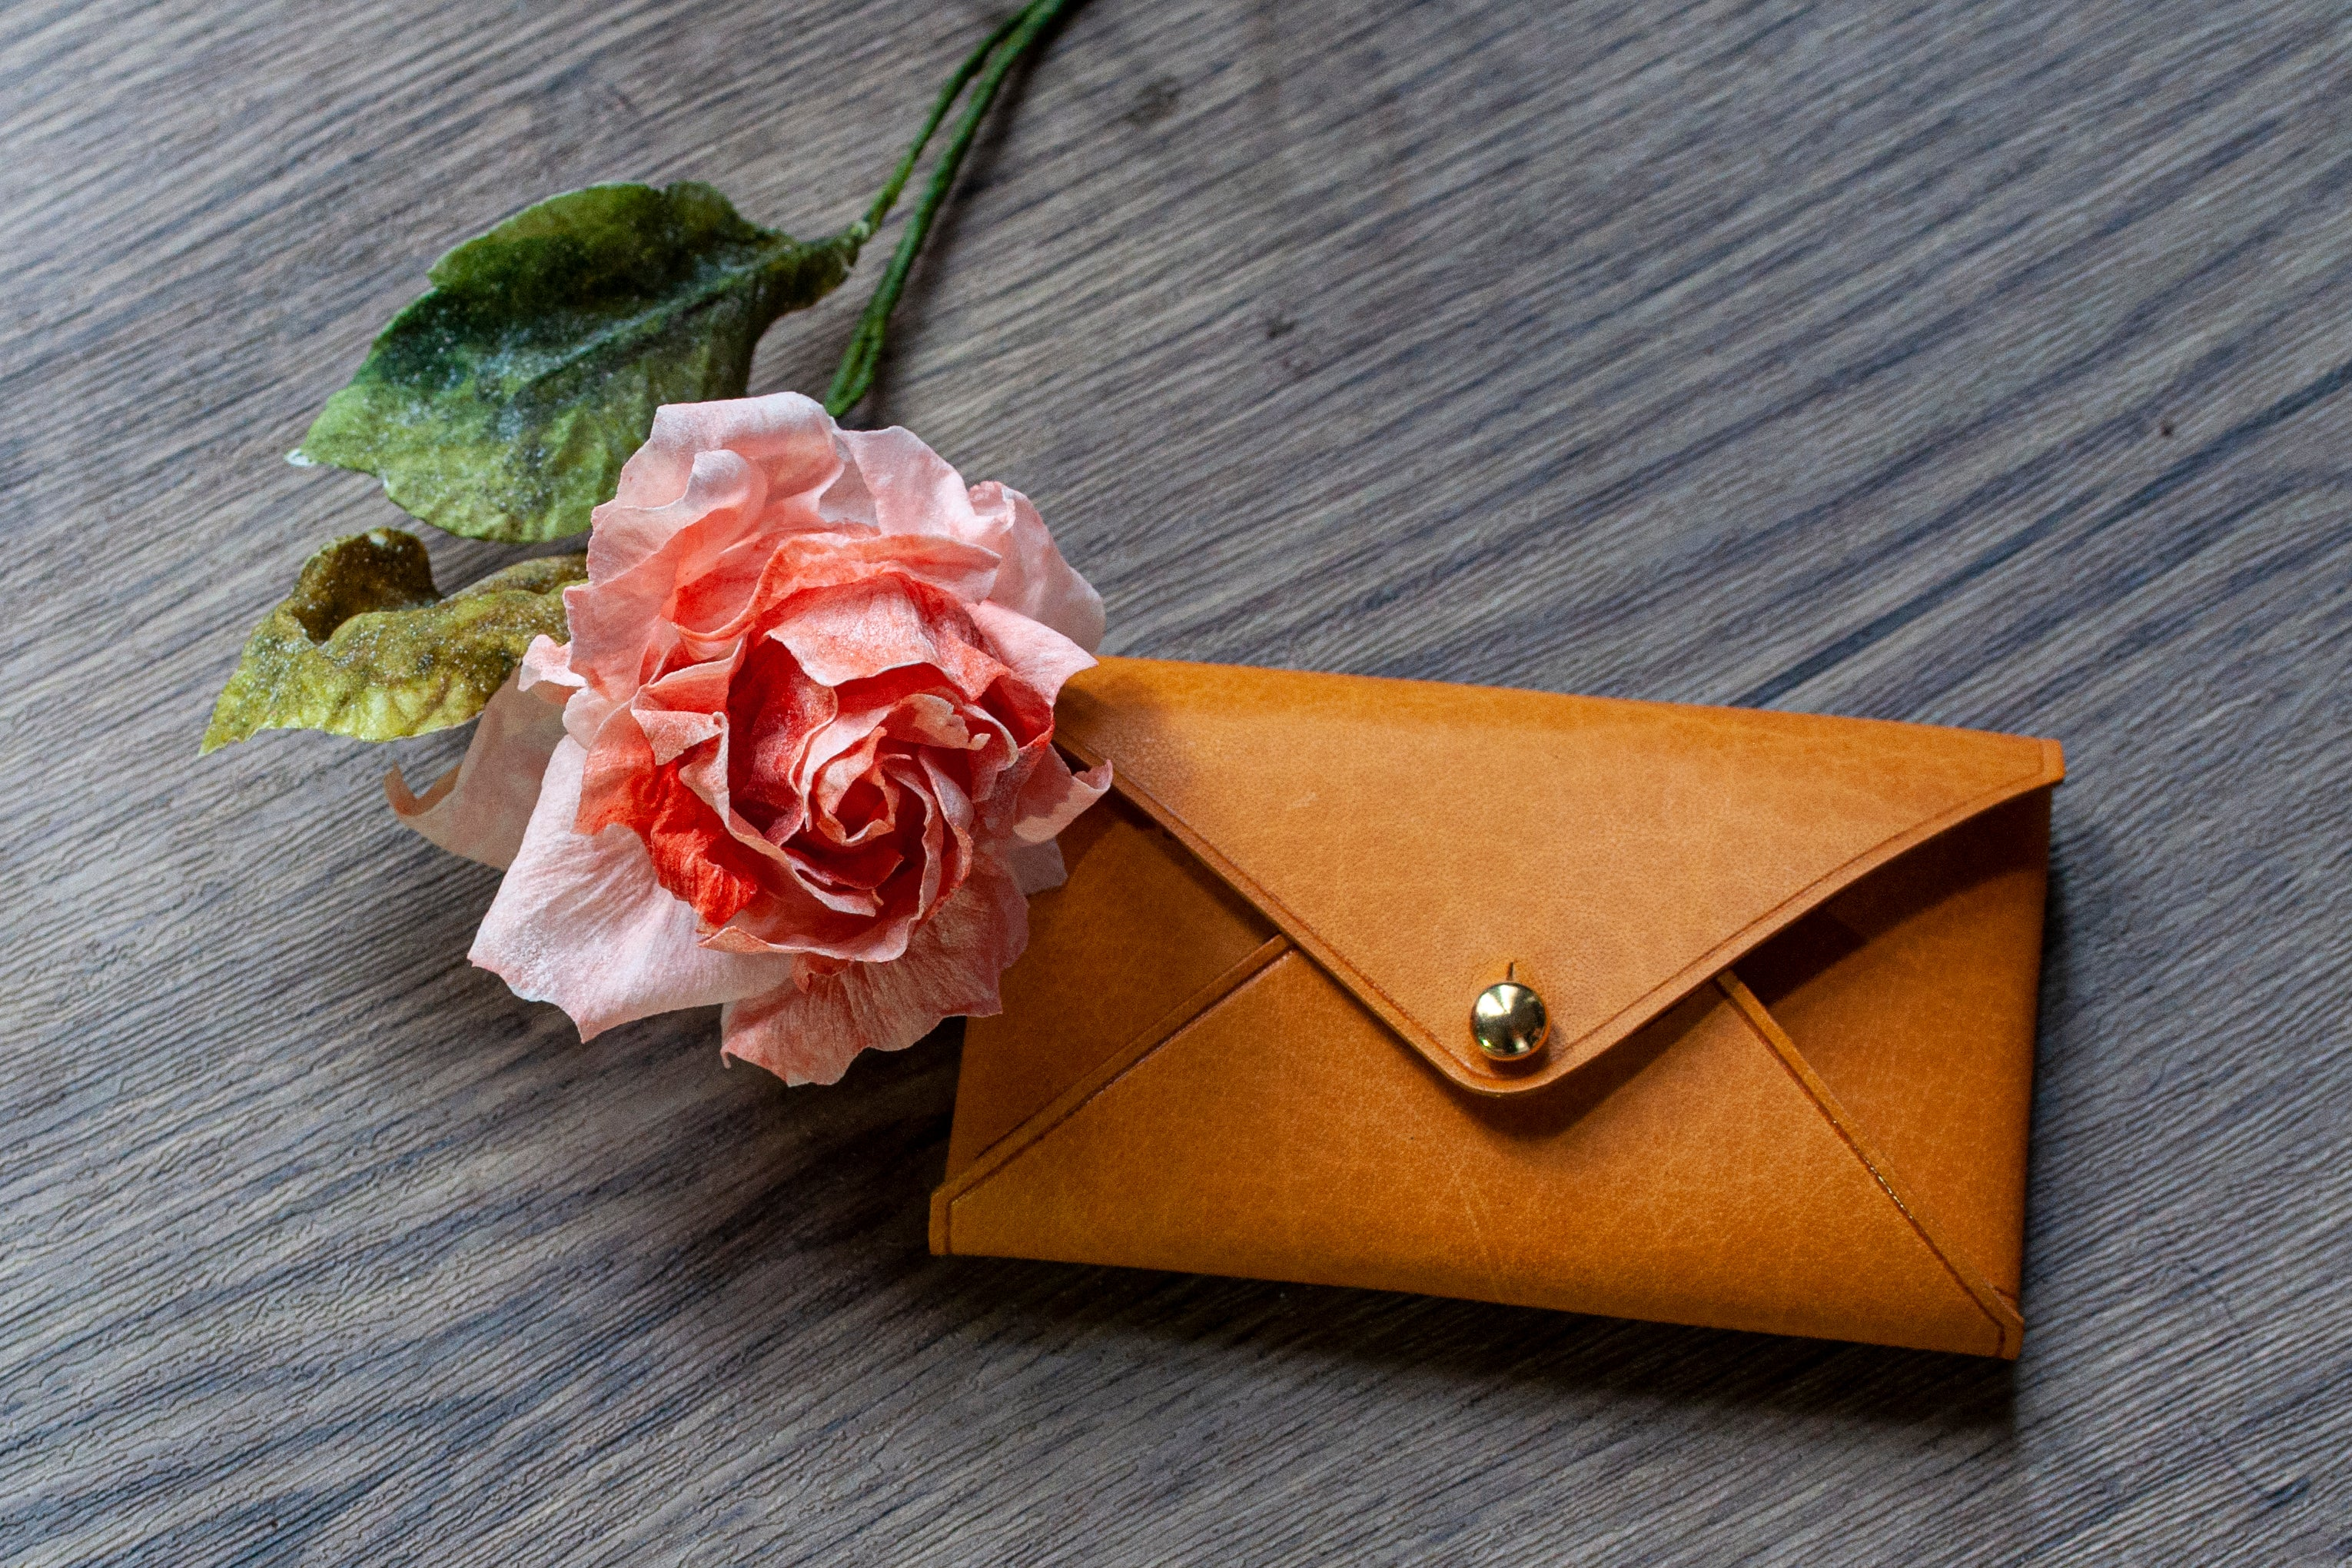 Leather Craft and Wafer Paper Flower Art - Crafune x Natalie (29th Aug, 11.15 am) - Crafune